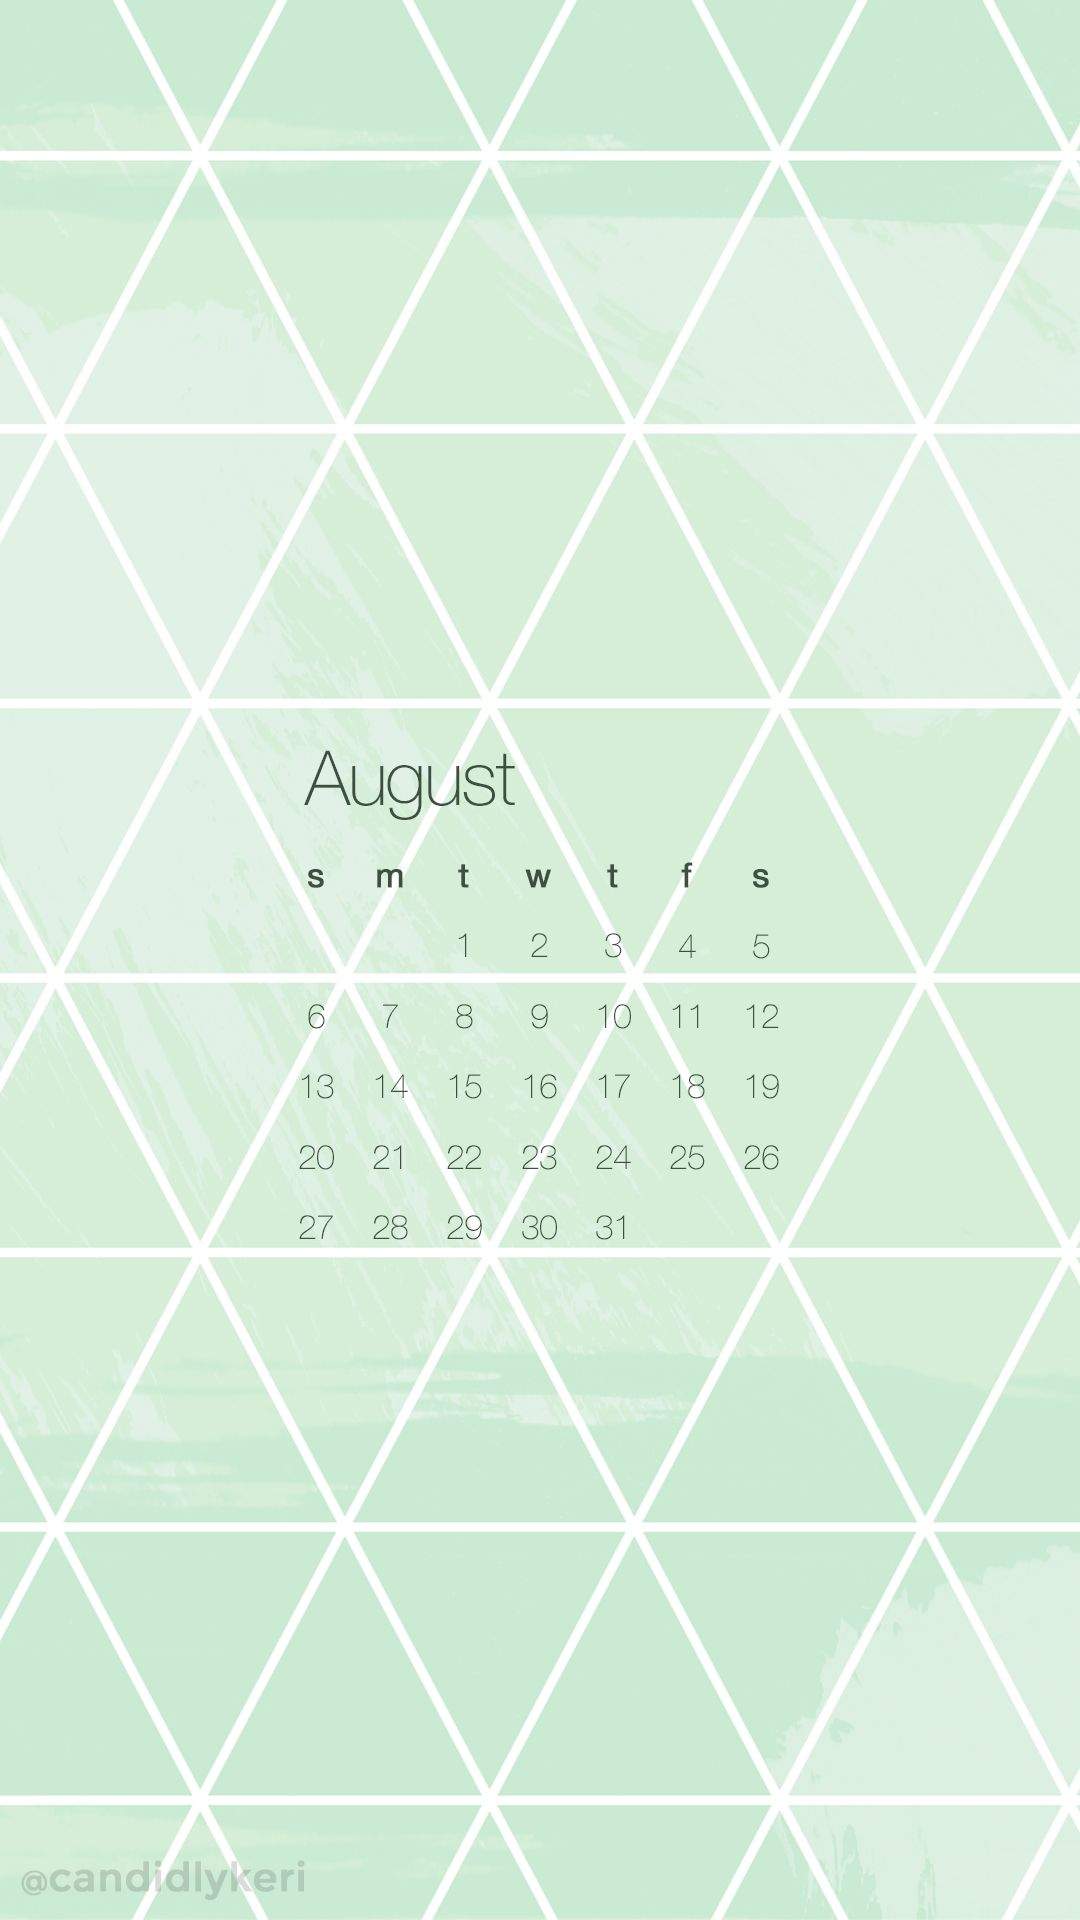 Awesome Green Shape Pattern Fun Background August Calendar 2017 Wallpaper You Can  Download On The Blog!